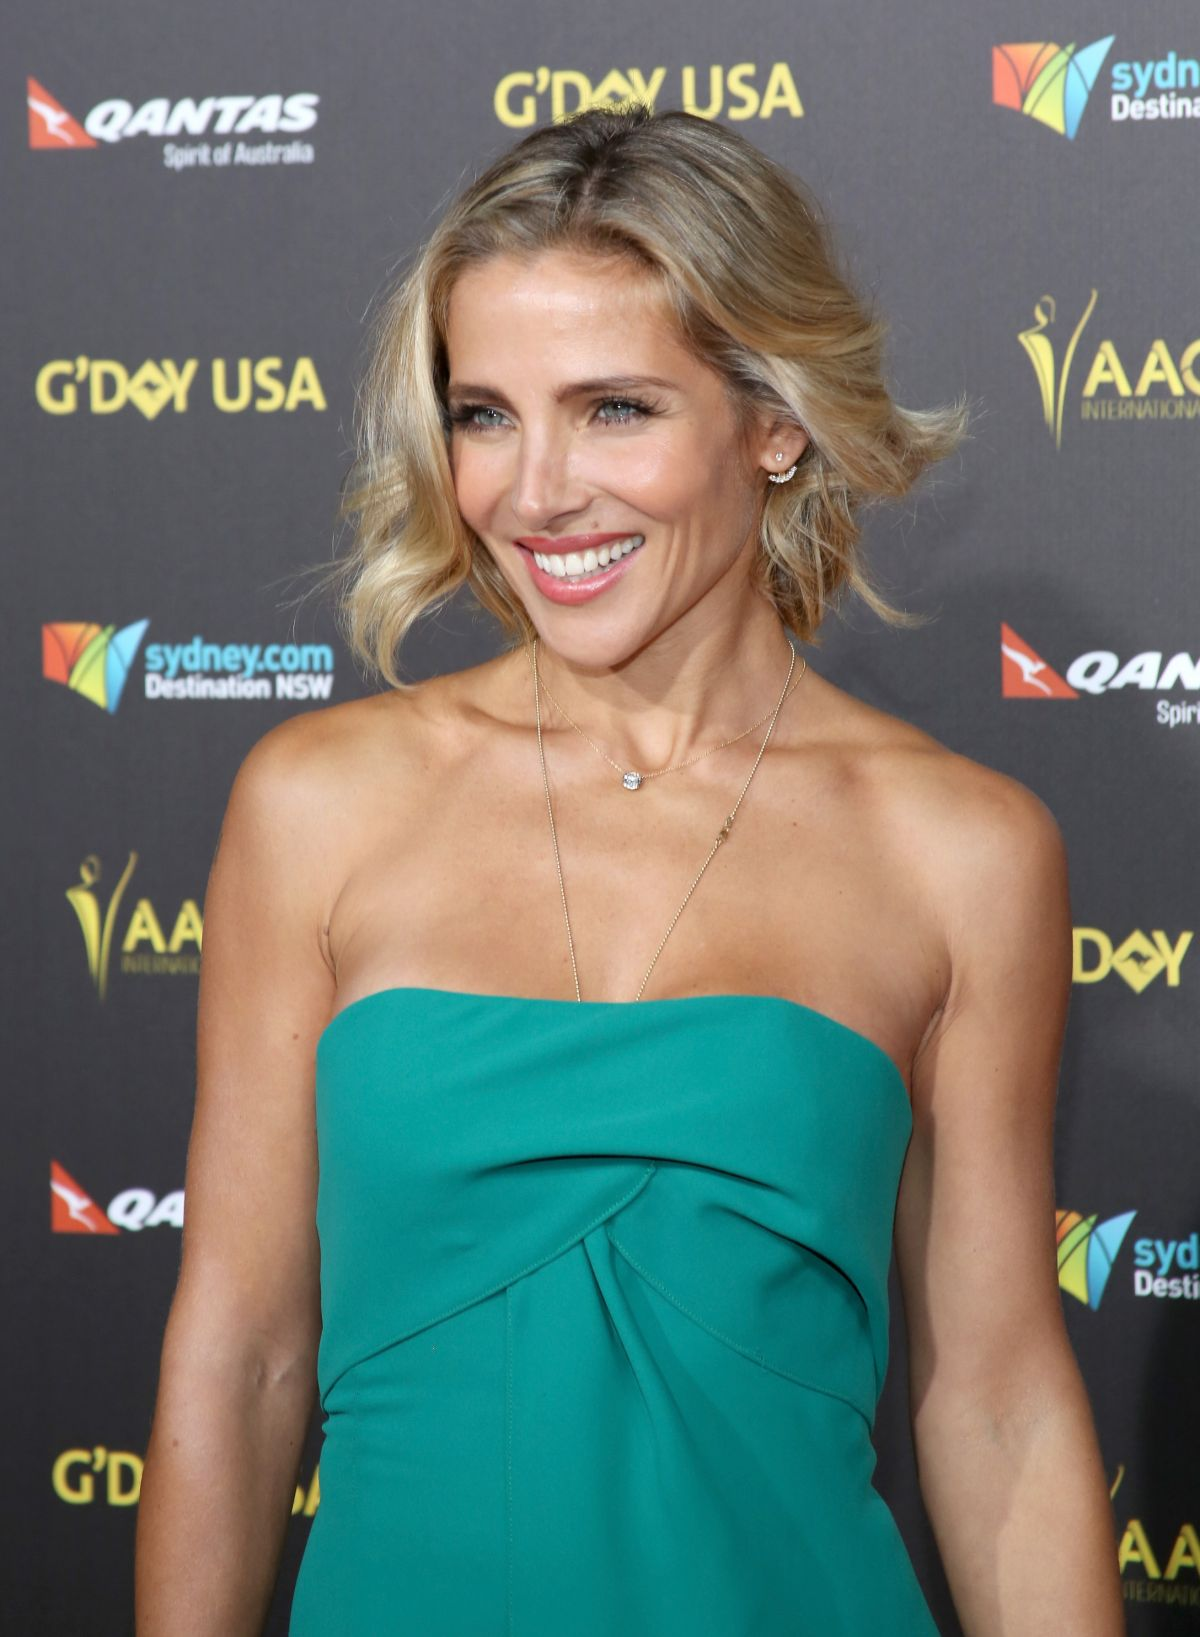 elsa pataky holaelsa pataky 2017, elsa pataky hola, elsa pataky blog, elsa pataky confidential instagram, elsa pataky fast five, elsa pataky and chris hemsworth wedding, elsa pataky family, elsa pataky yoga, elsa pataky exercise, elsa pataky age, elsa pataky twitter official, elsa pataky tattoos, elsa pataky entrevista, elsa pataky engagement ring, elsa pataky 2010, elsa pataky father, elsa pataky blog glamour, elsa pataky padre, elsa pataky wikipedia español, elsa pataky fast and furious 7